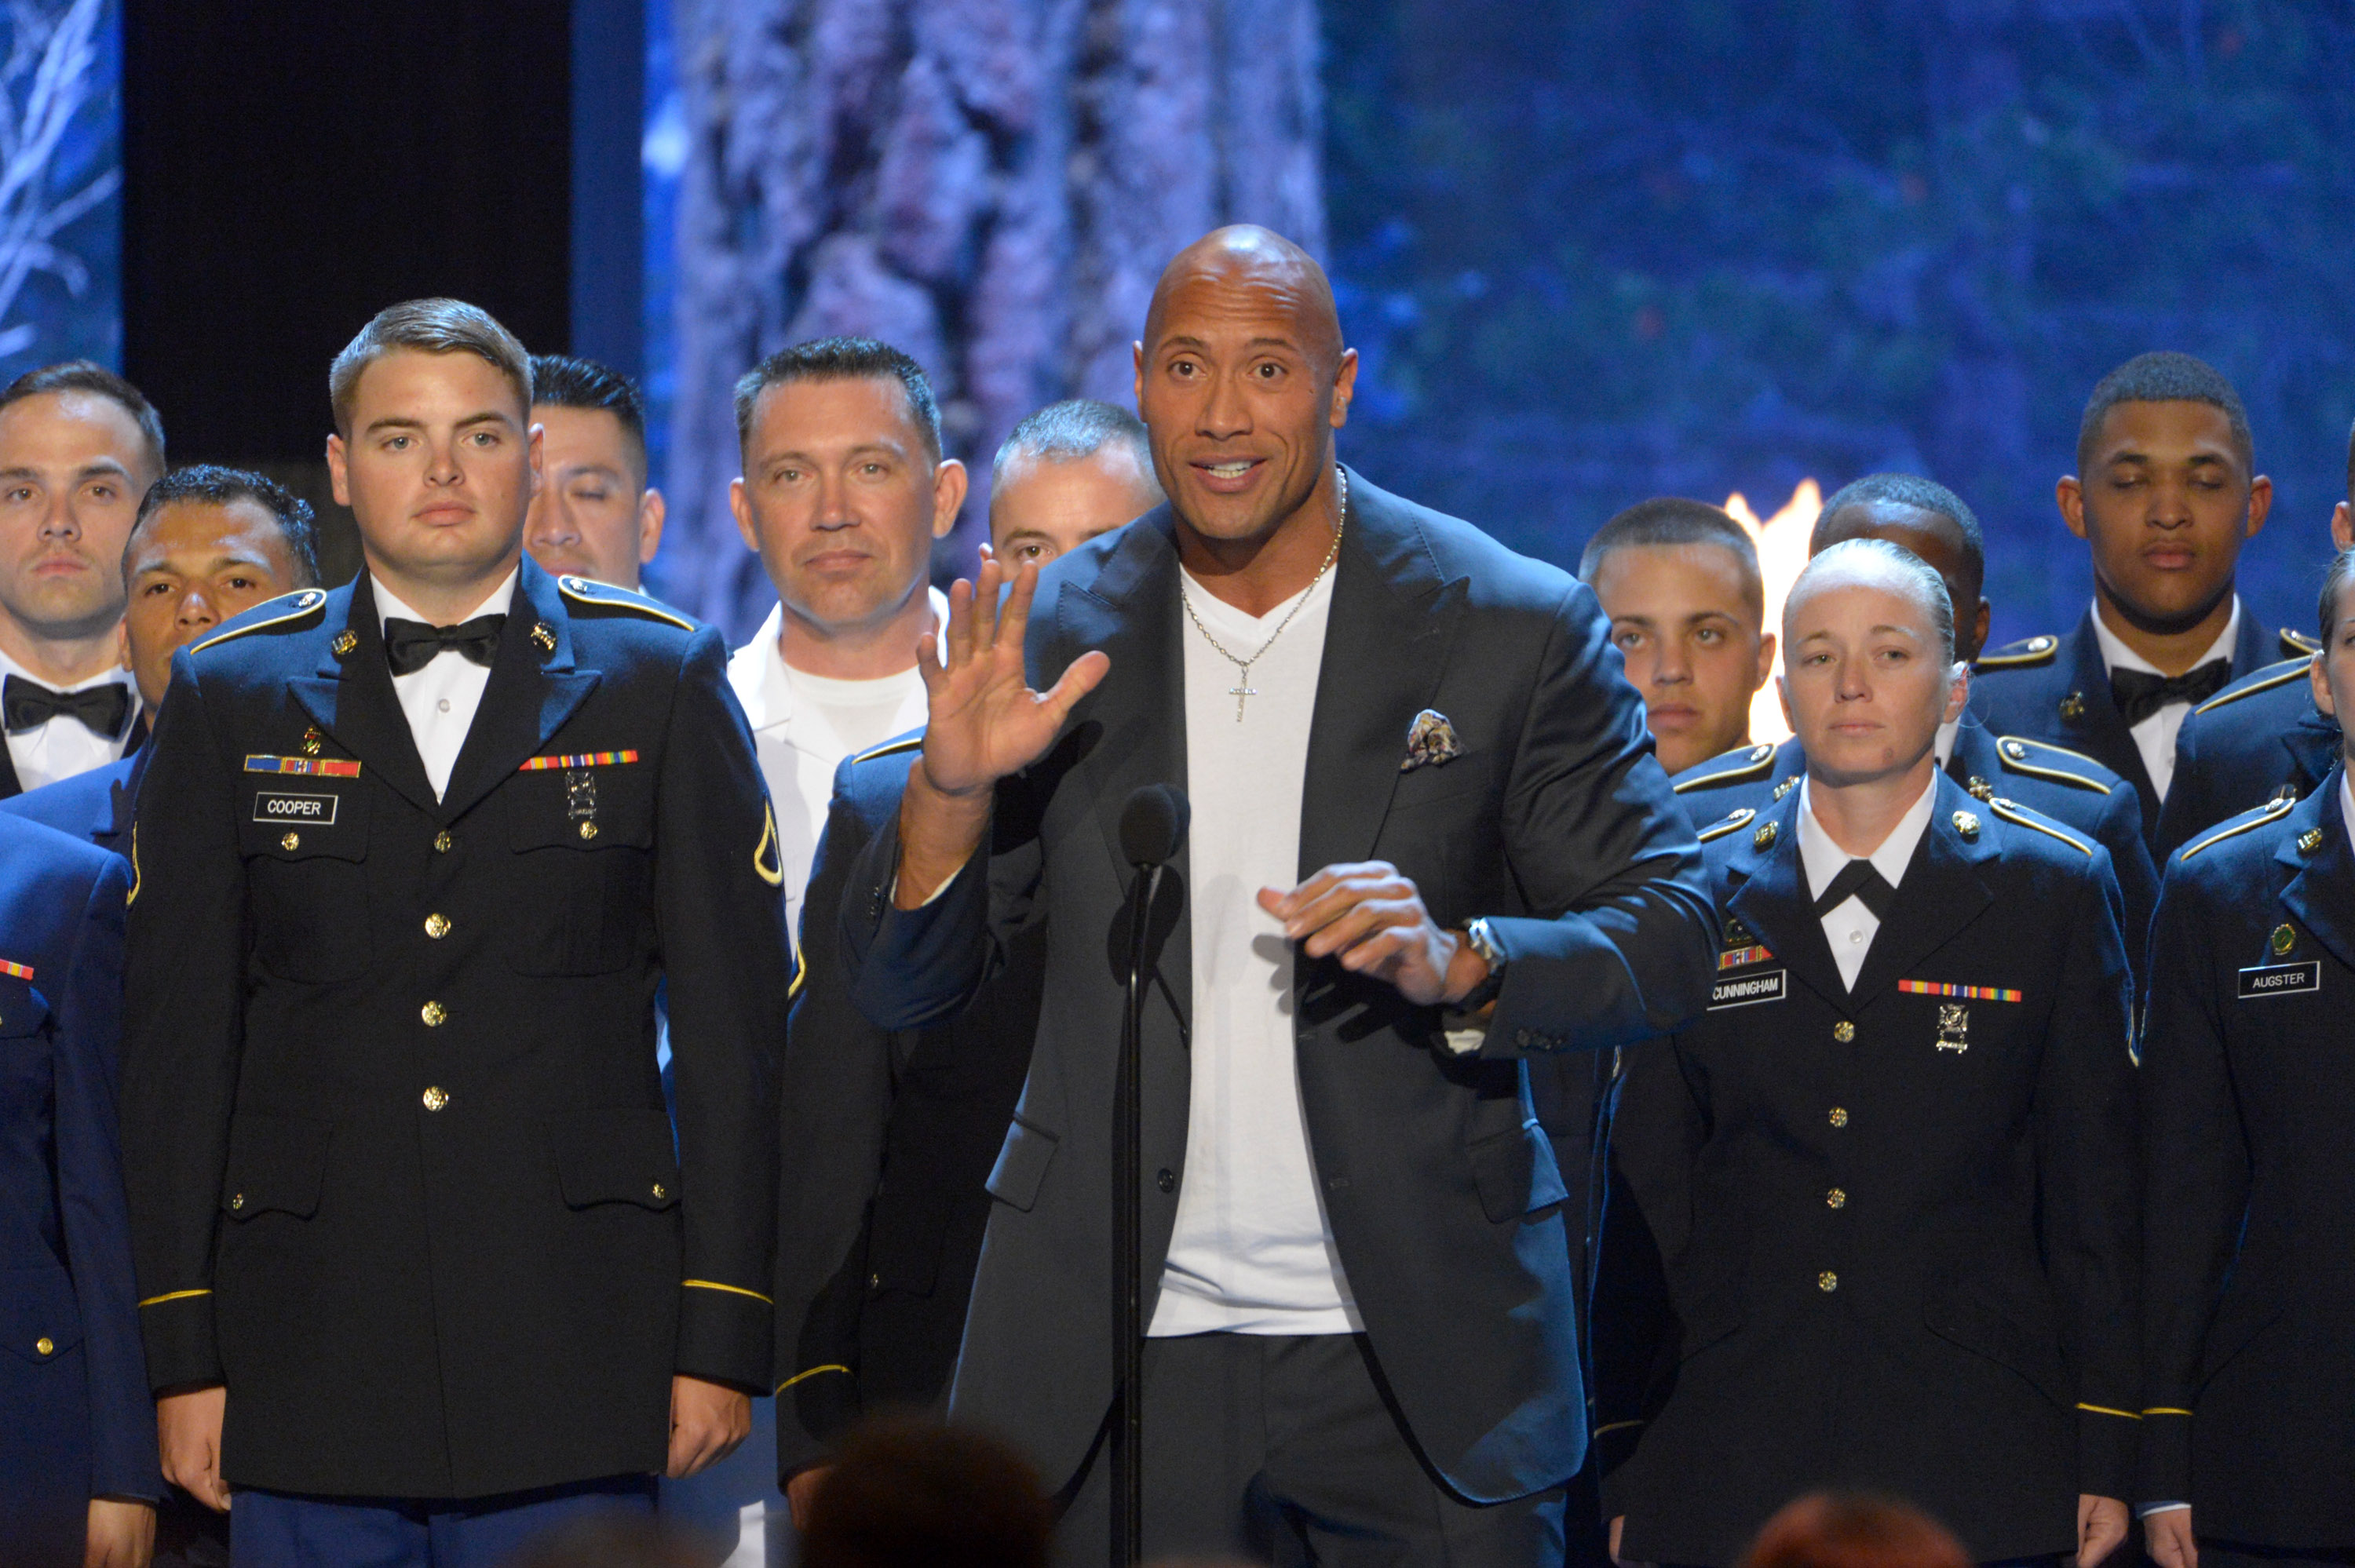 Dwayne Johnson bringing star power to Hawaii for 'Rock the Troops'